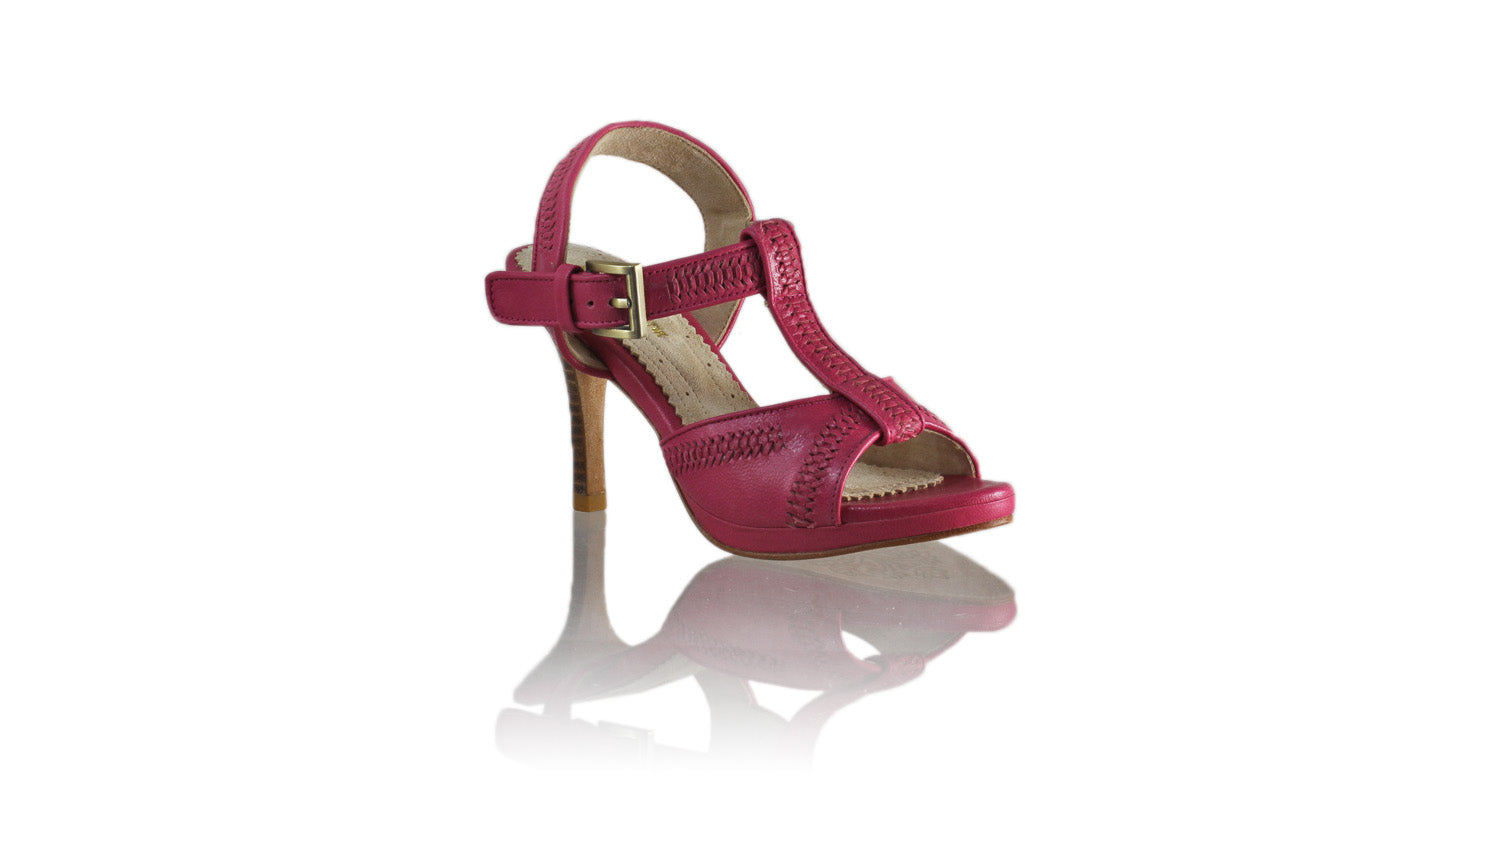 Leather-shoes-Jazz 90mm SH PF - Fuschia-sandals higheel-NILUH DJELANTIK-NILUH DJELANTIK